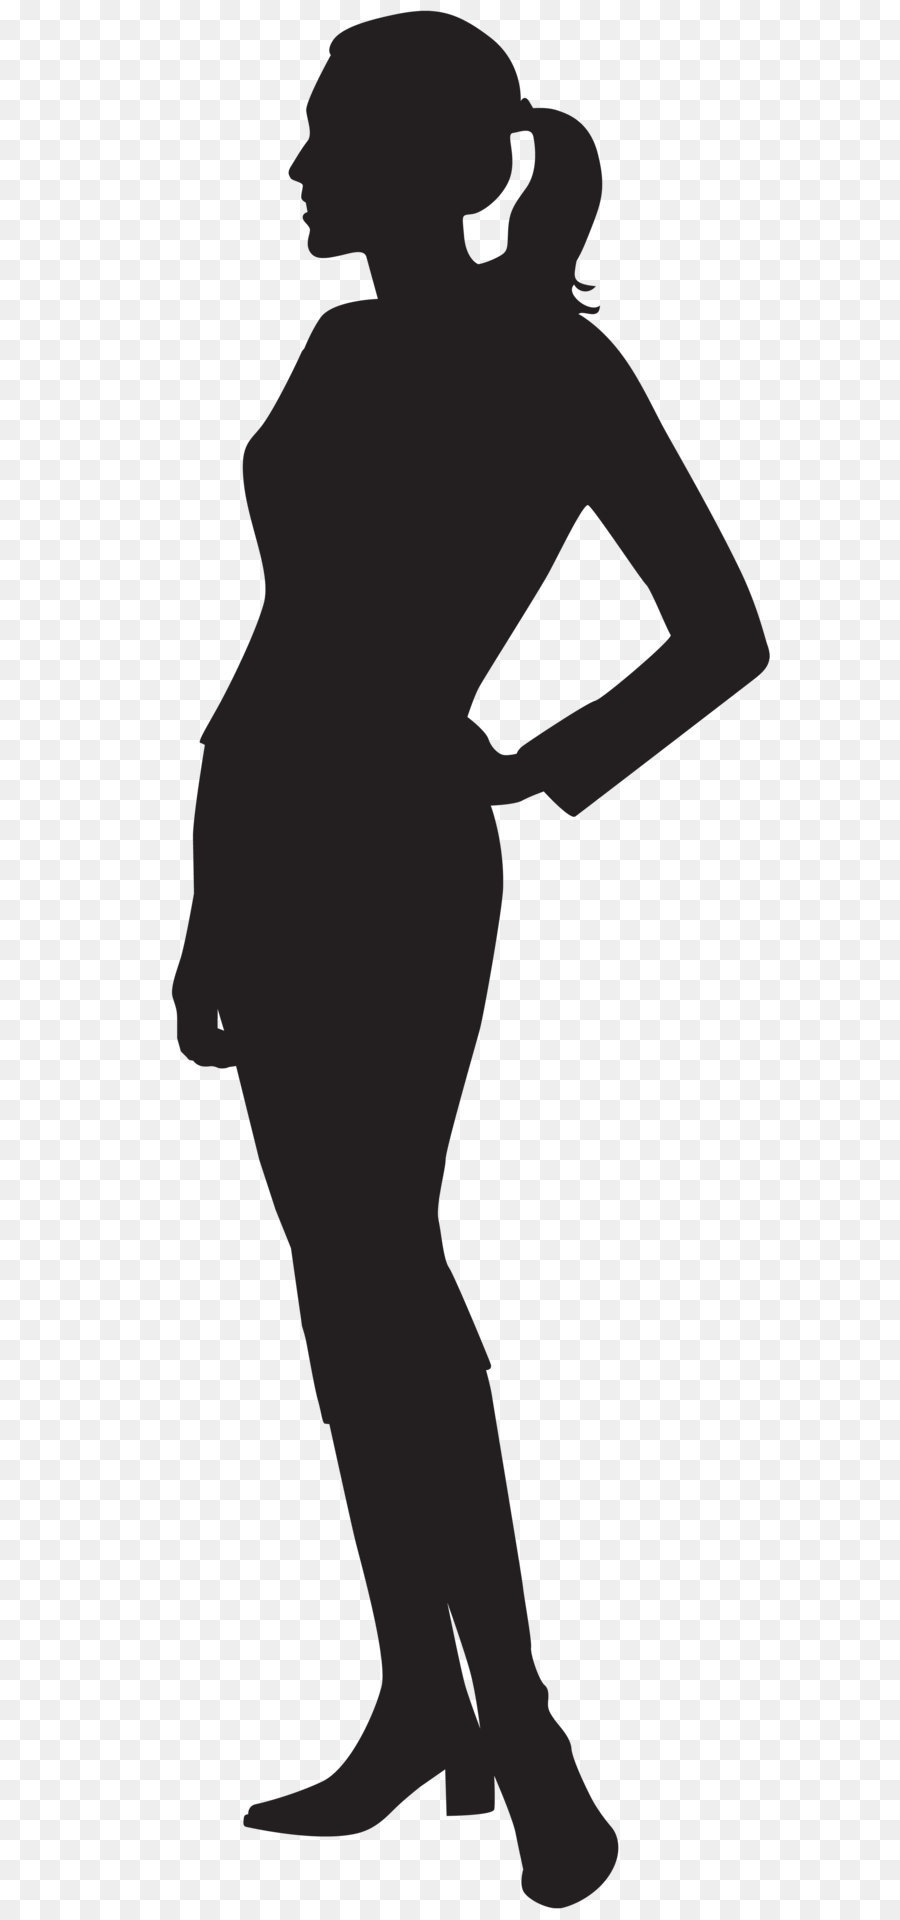 Clipart female silhouette vector black and white stock Woman Cartoon png download - 2716*8000 - Free Transparent Silhouette ... vector black and white stock